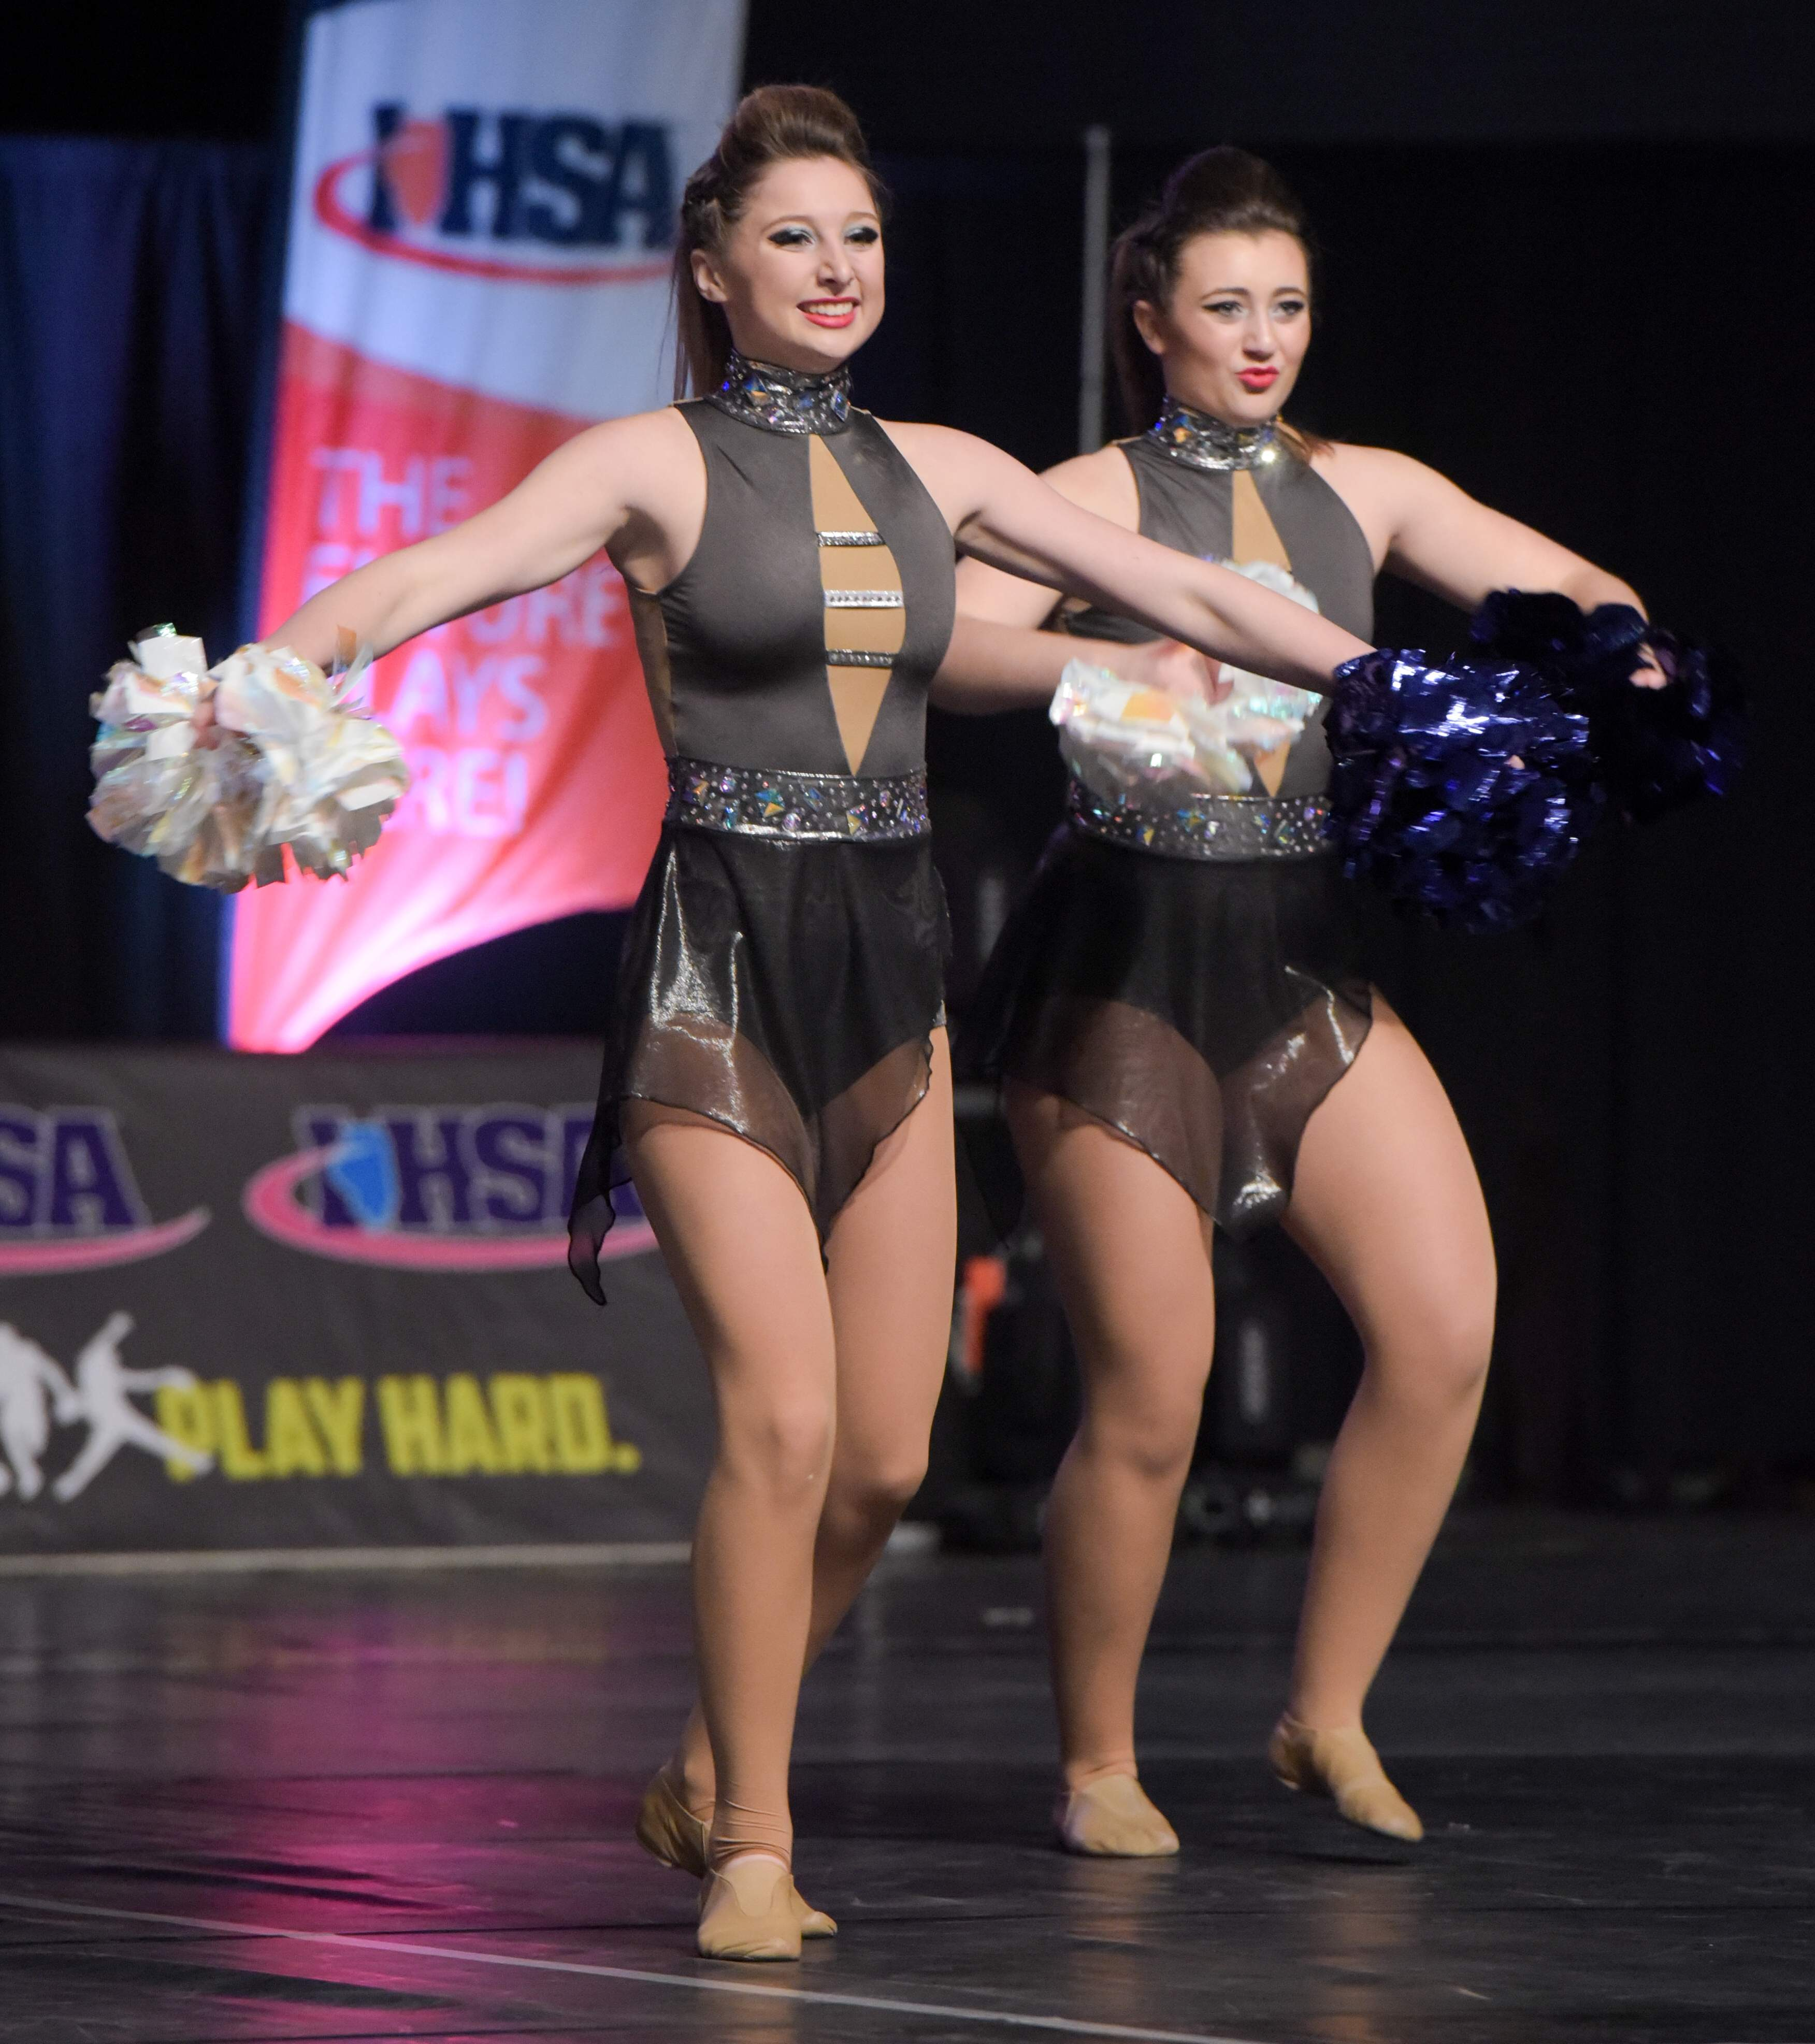 Jenna Leaton, left, and Jacey Nehring, of the Murphysboro dance team.